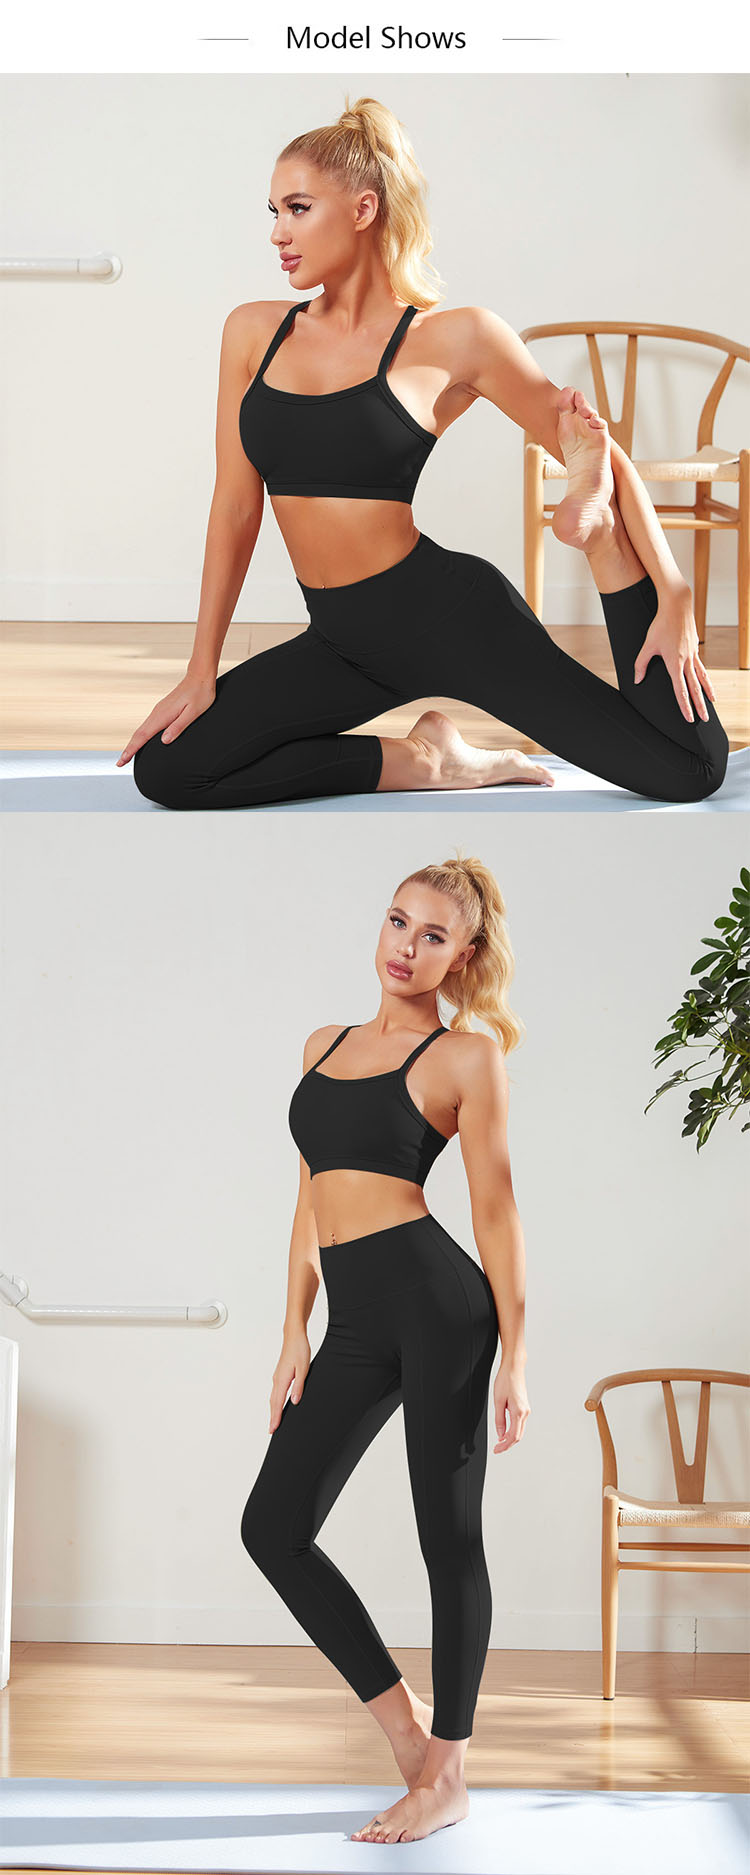 Yoga pants and sports bra are more youthful with the bright cut-off cardigan